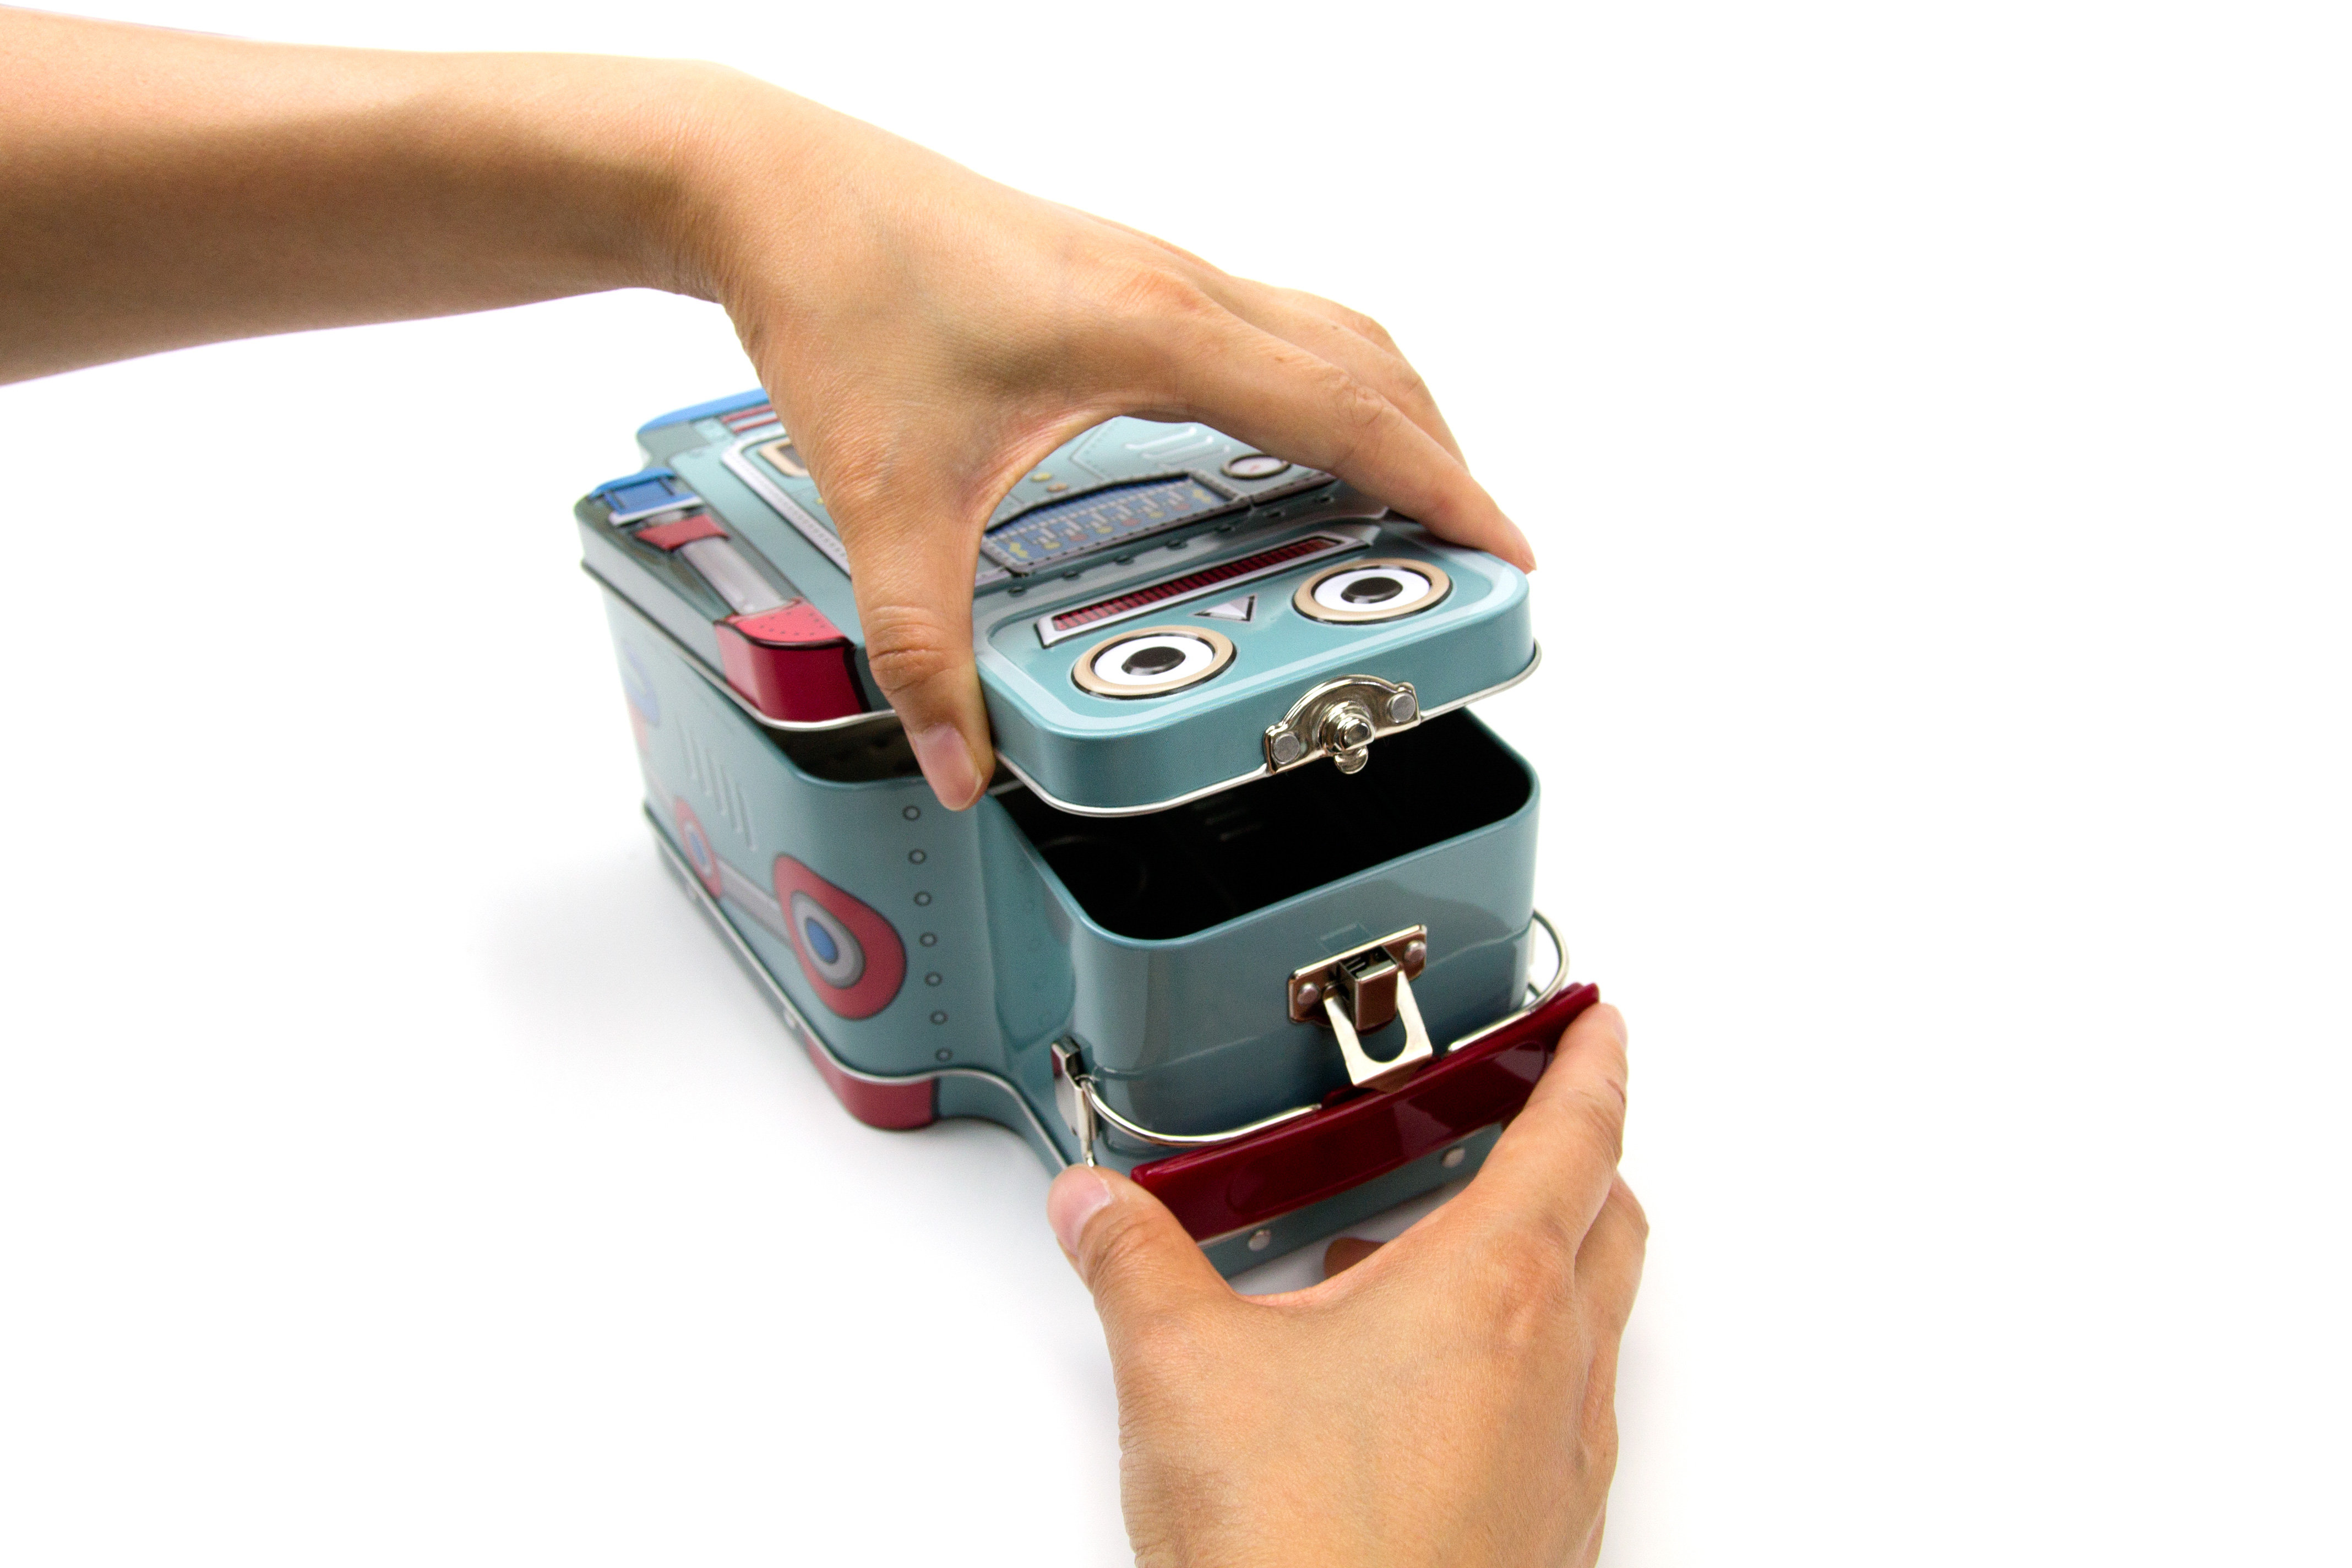 Brotbox Kinder Roboter Lunch Box Hippe Kinder